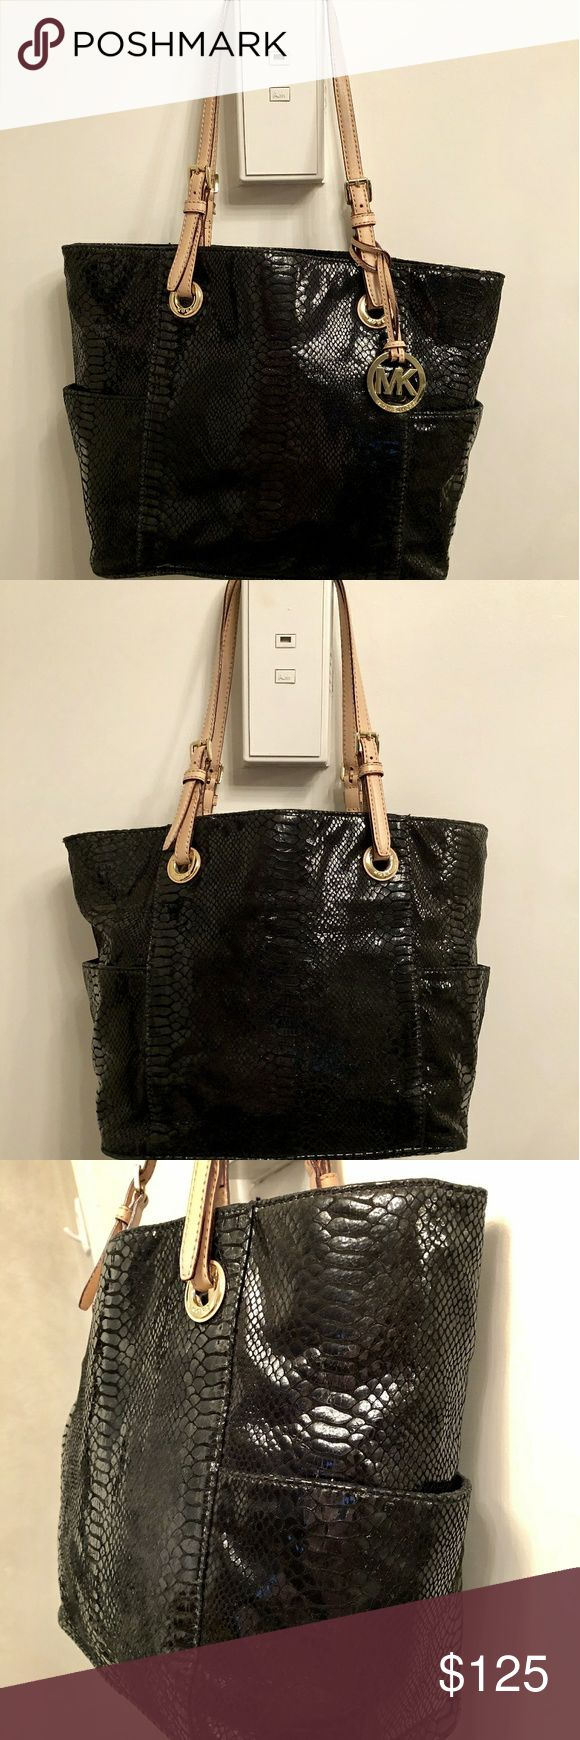 "MICHAEL Michael Kors jet set python leather bag Black python-embossed leather tote bag w/tan dual adjustable shoulder straps. Buckled top handles loop through logo-engraved grommets.Goldtone MK hardware. Sturdy hanging logo fob & 'feet'. Light scratches.Open bag w/interior zip pocket, cell phone pocket etc, 2 exterior side pockets.Logo MK black fabric interior w/factory tag sewn into lining.11""height x 16"" across (top laid flat) / 12"" across (bottom) x 6""width (bottom).Beautiful bag, like…"